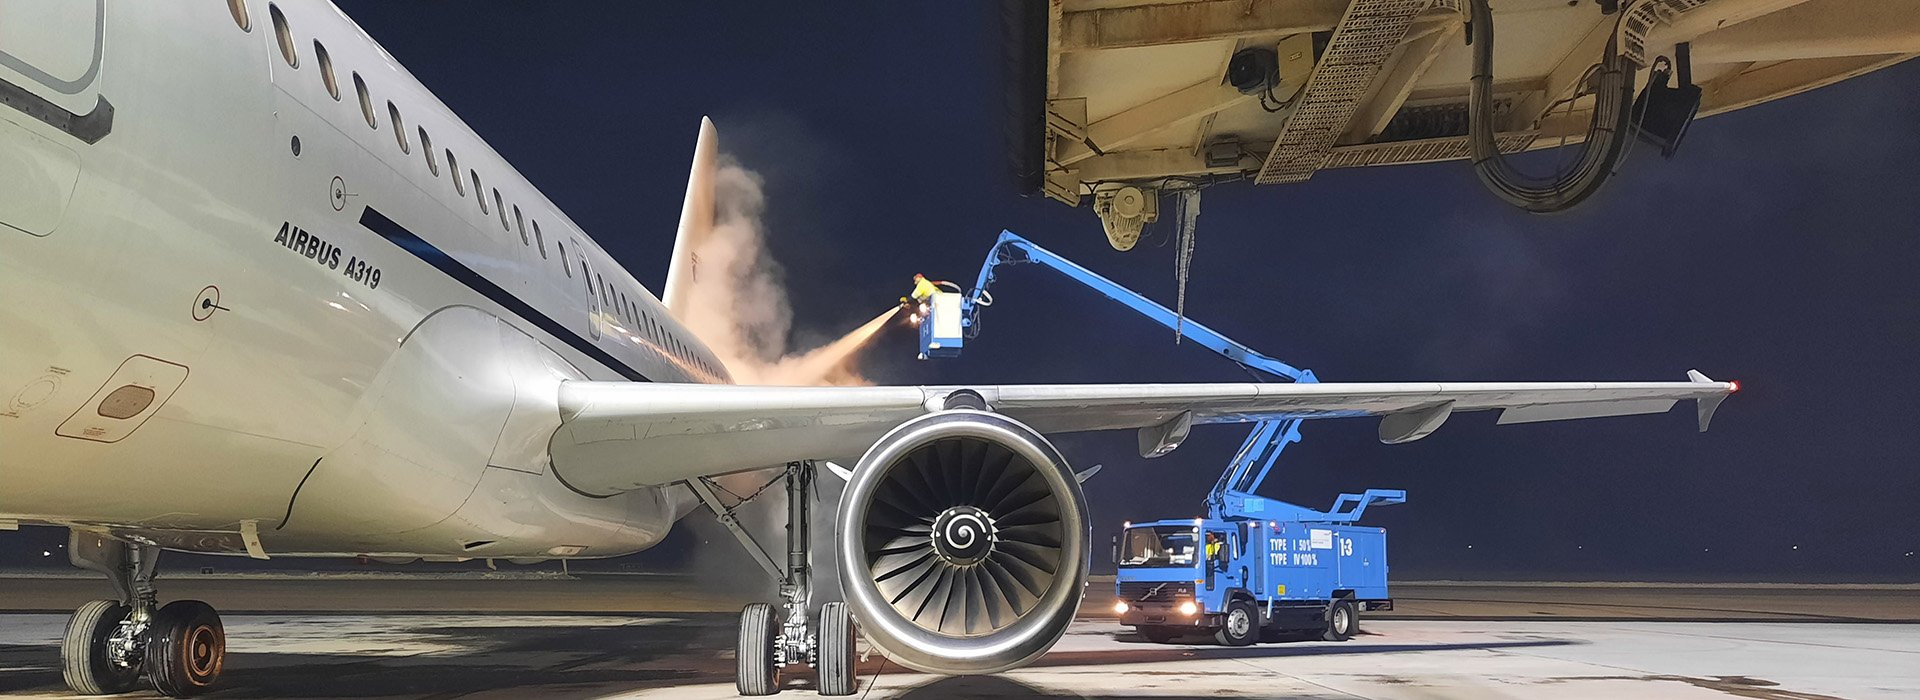 "De-icing an Aircraft: Would You Need Our ""Icy-stance""?"